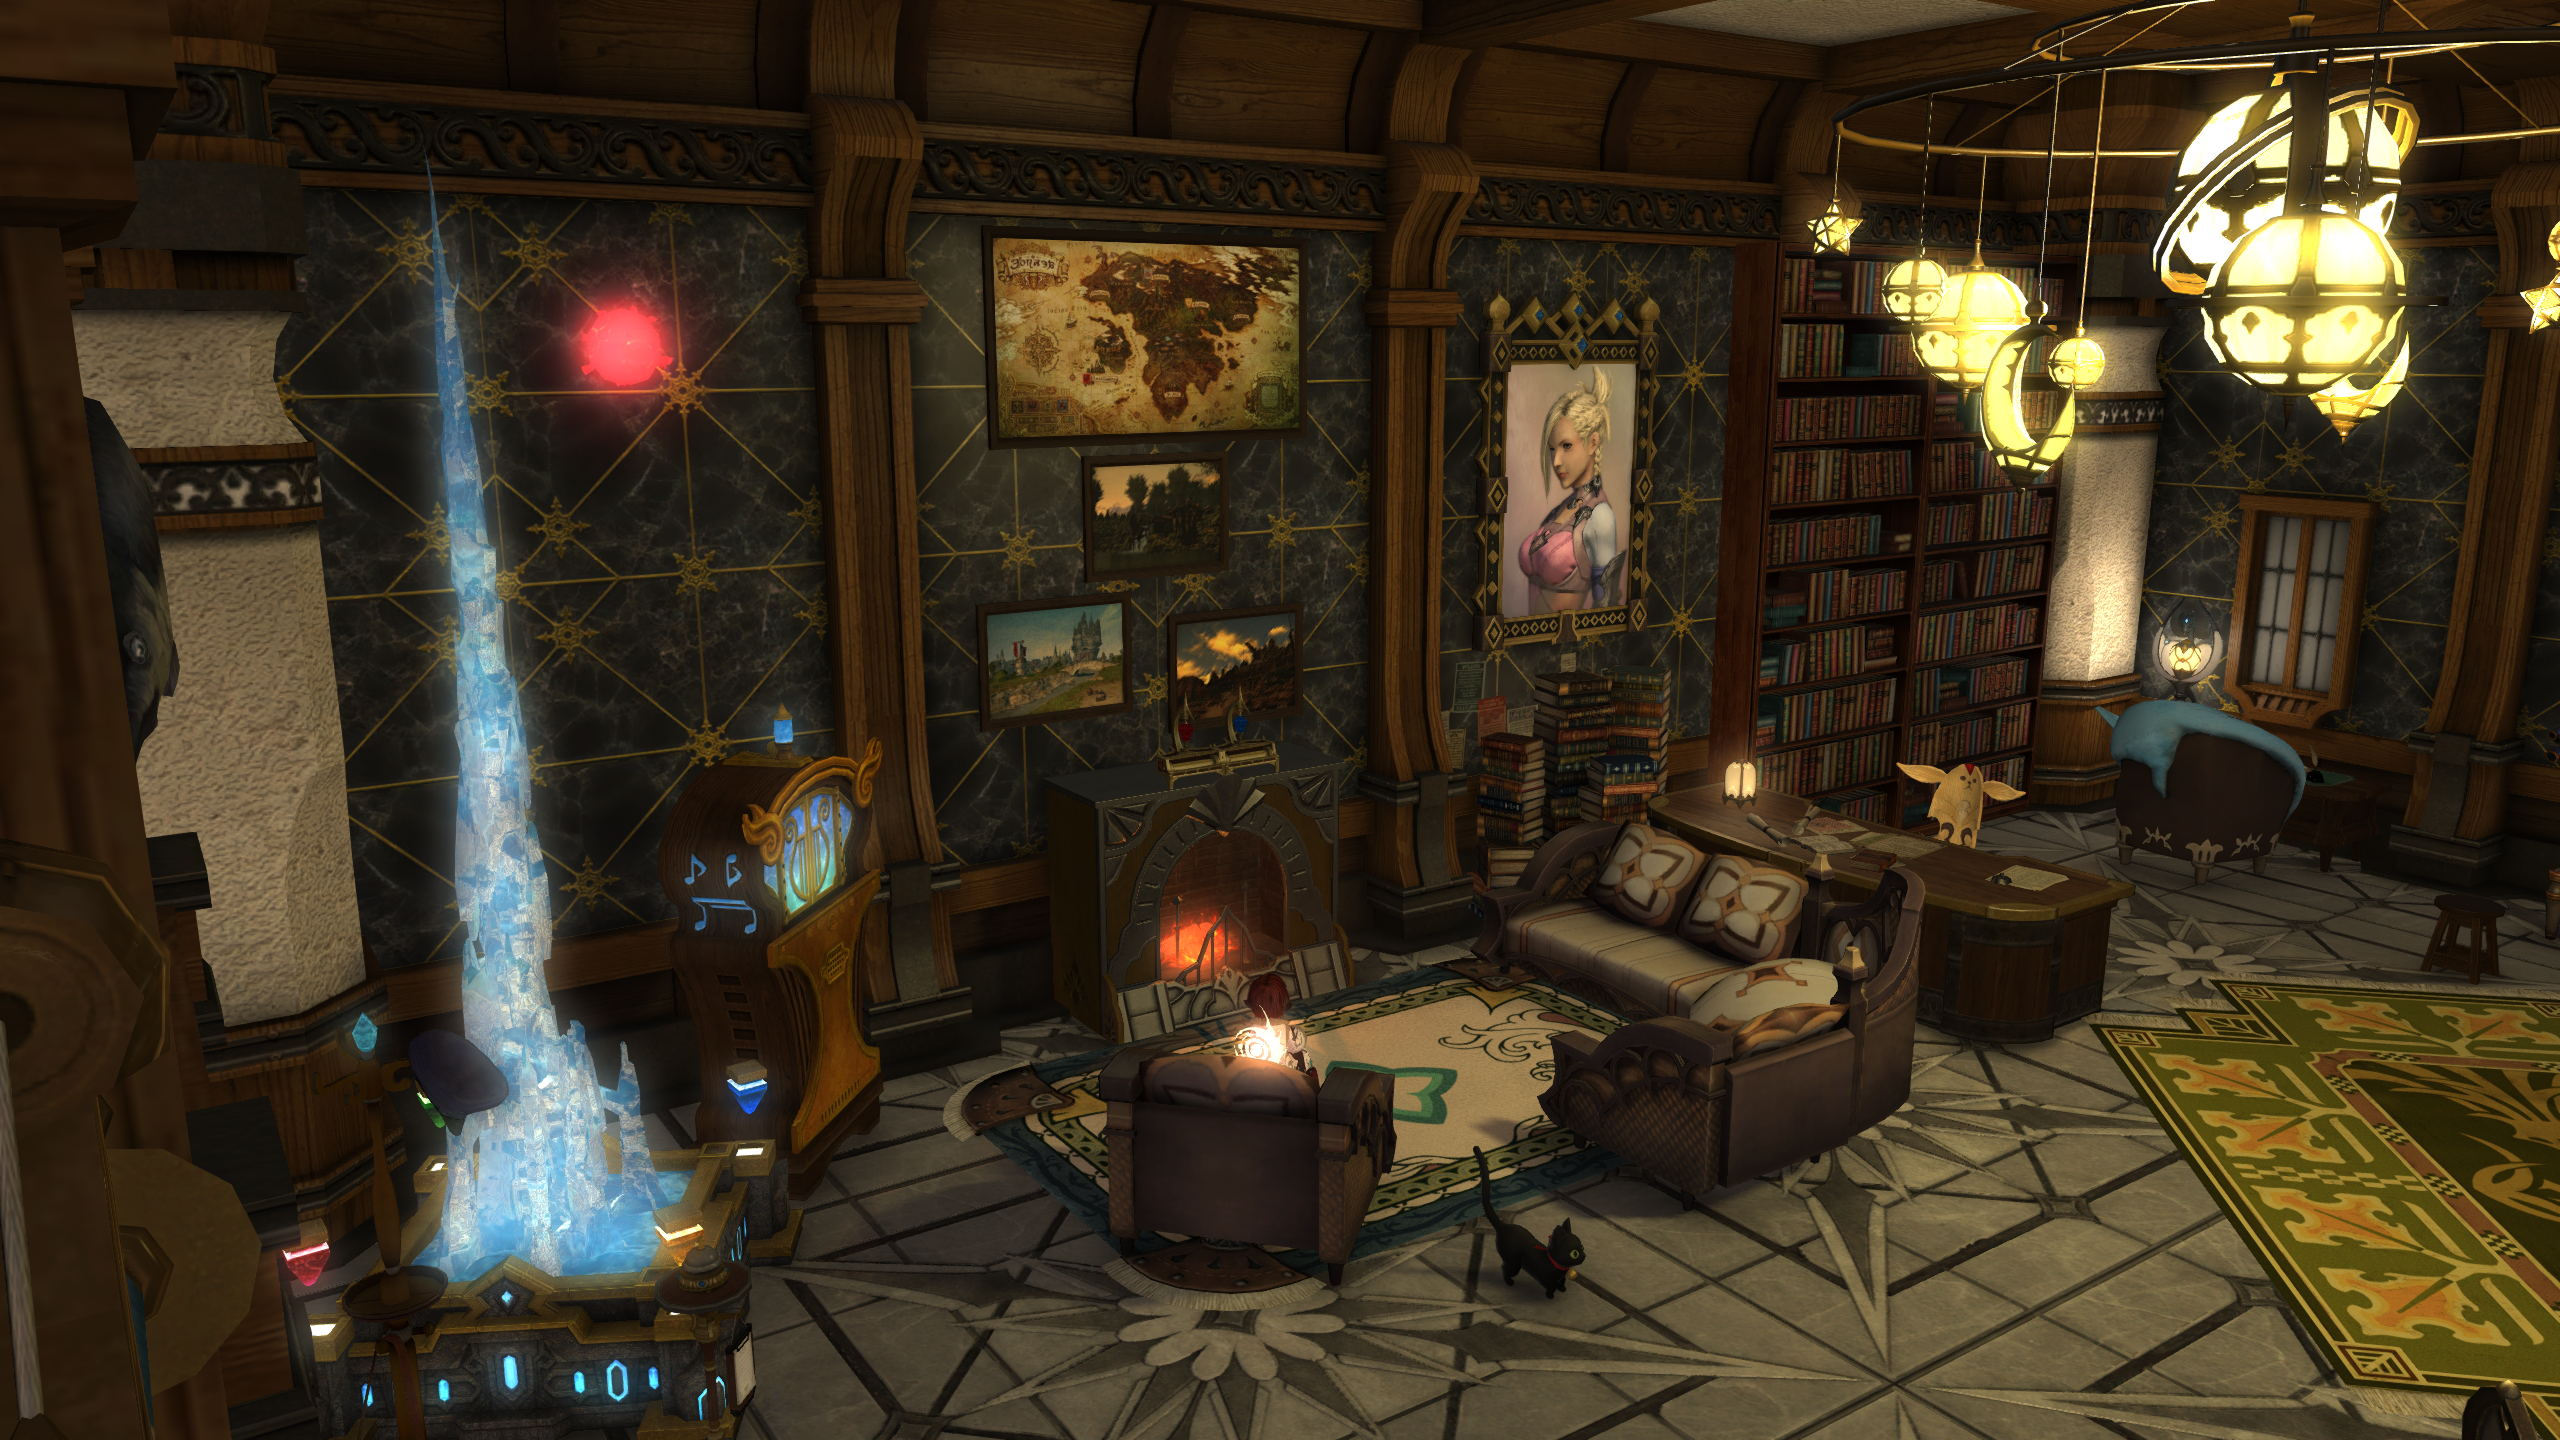 Final Fantasy Xiv Apartment Small House Fireplace House